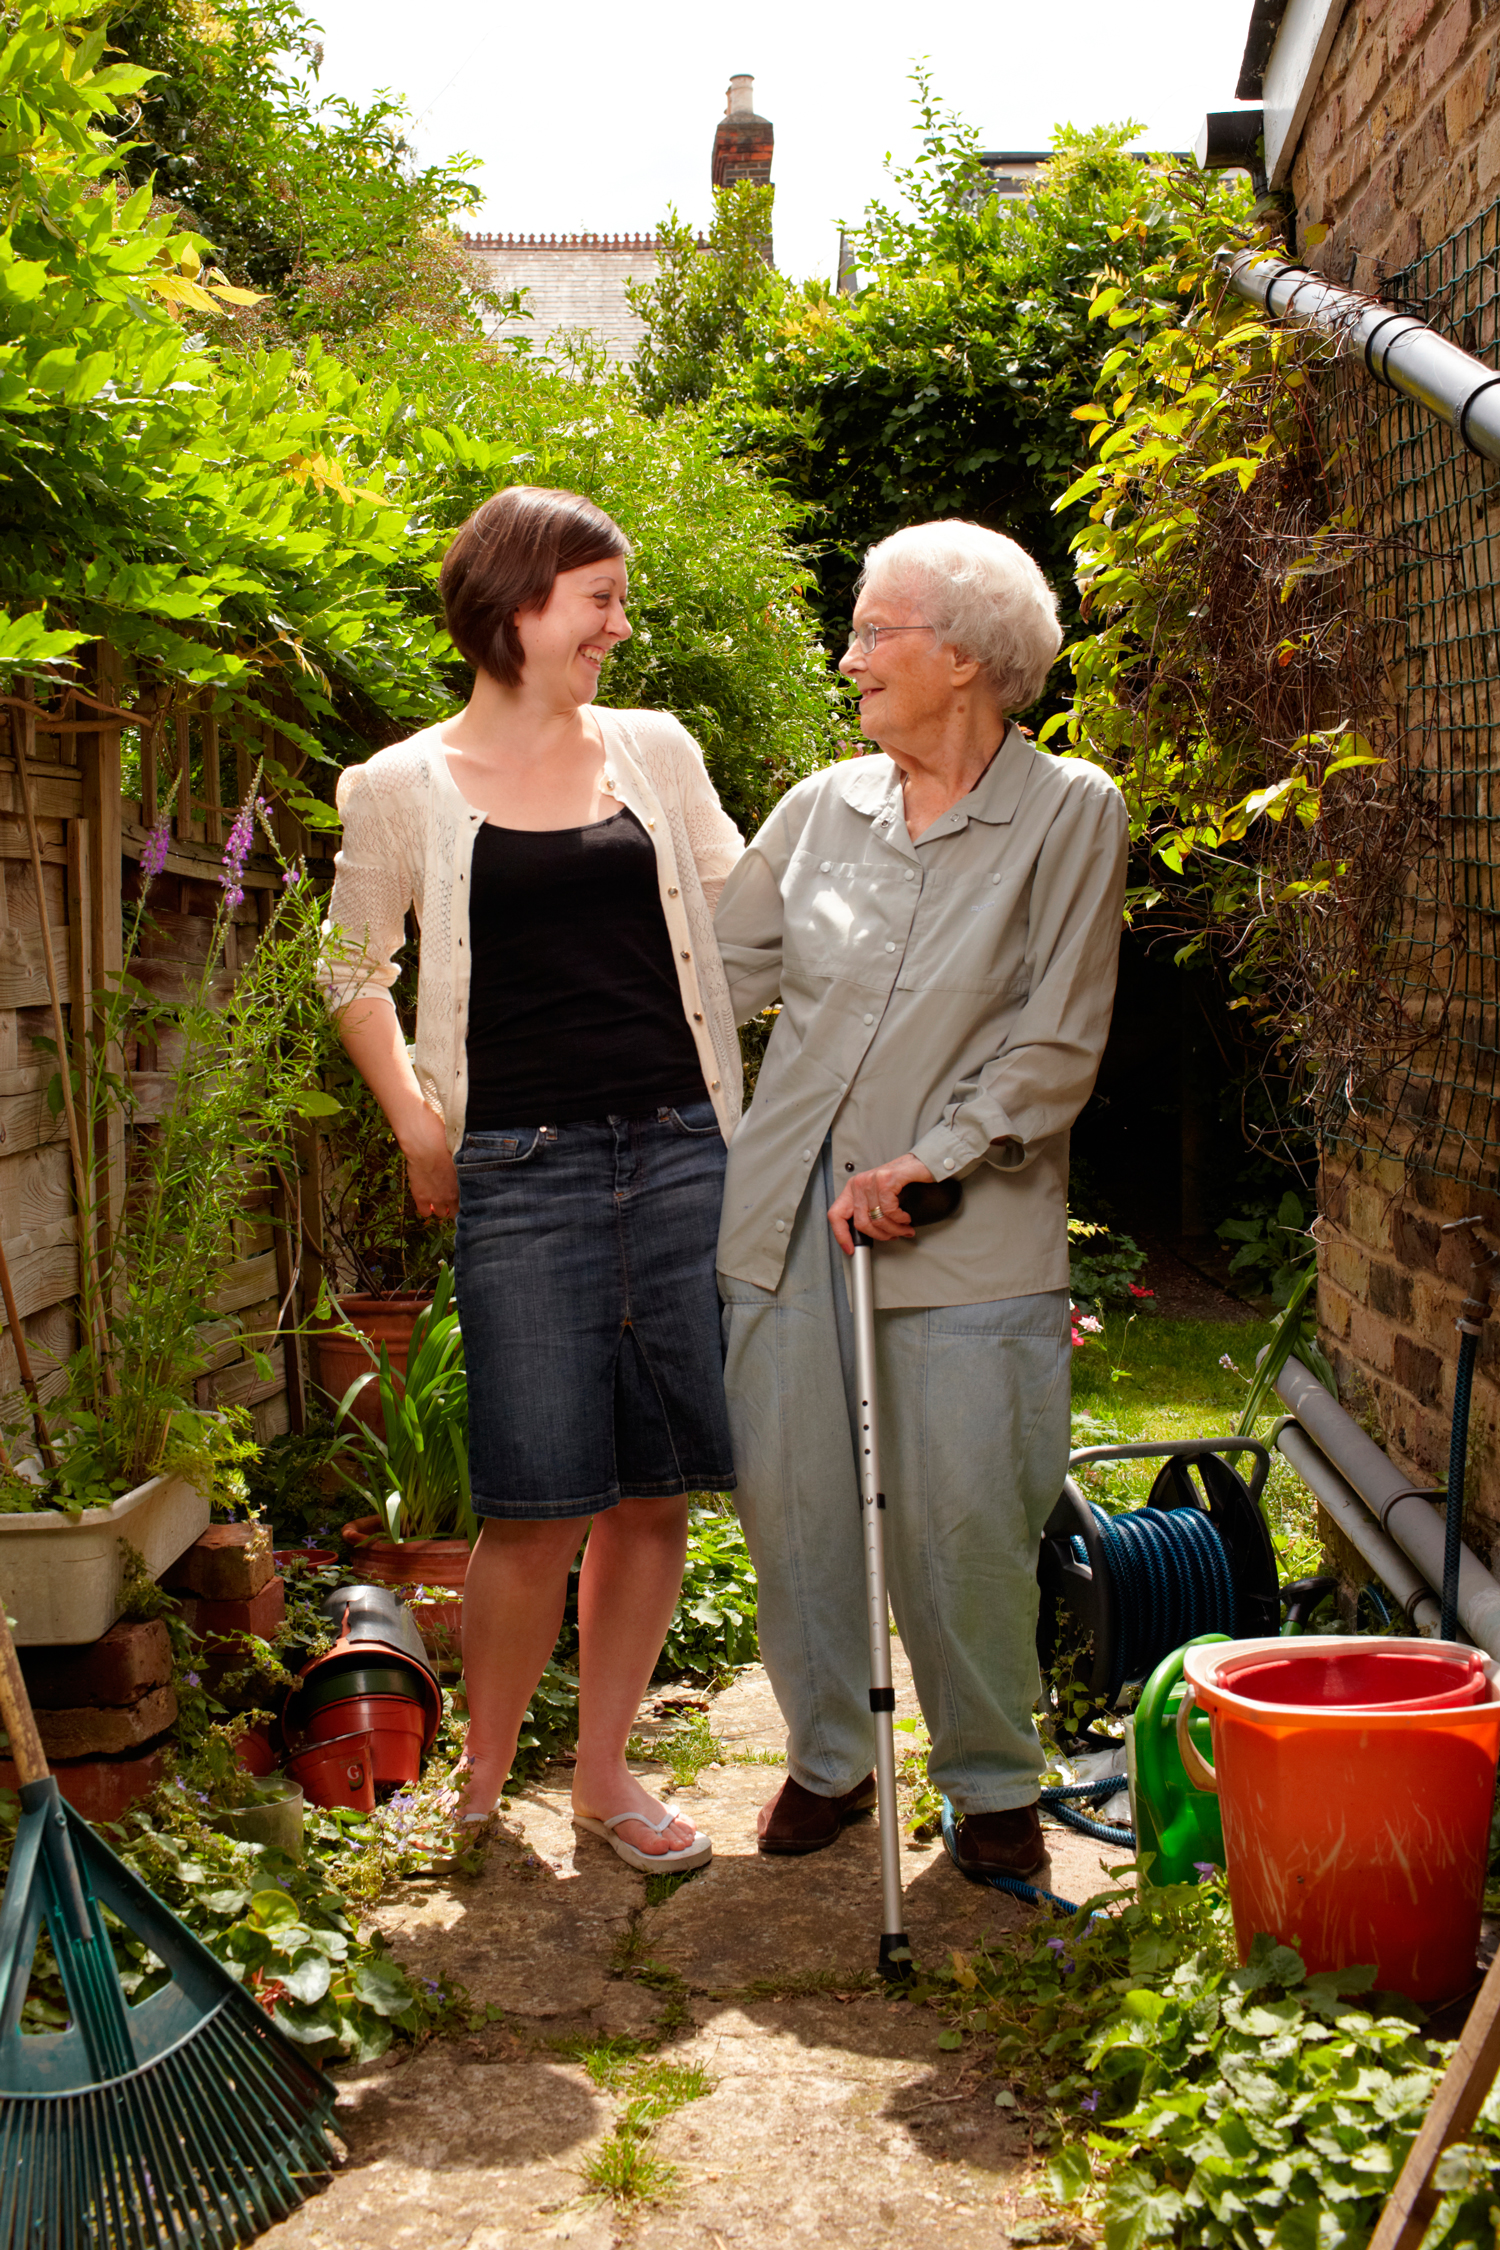 Homeshare - Homesharing is the perfect solution to two perennial problems – the isolation of old age and the poverty of youth.